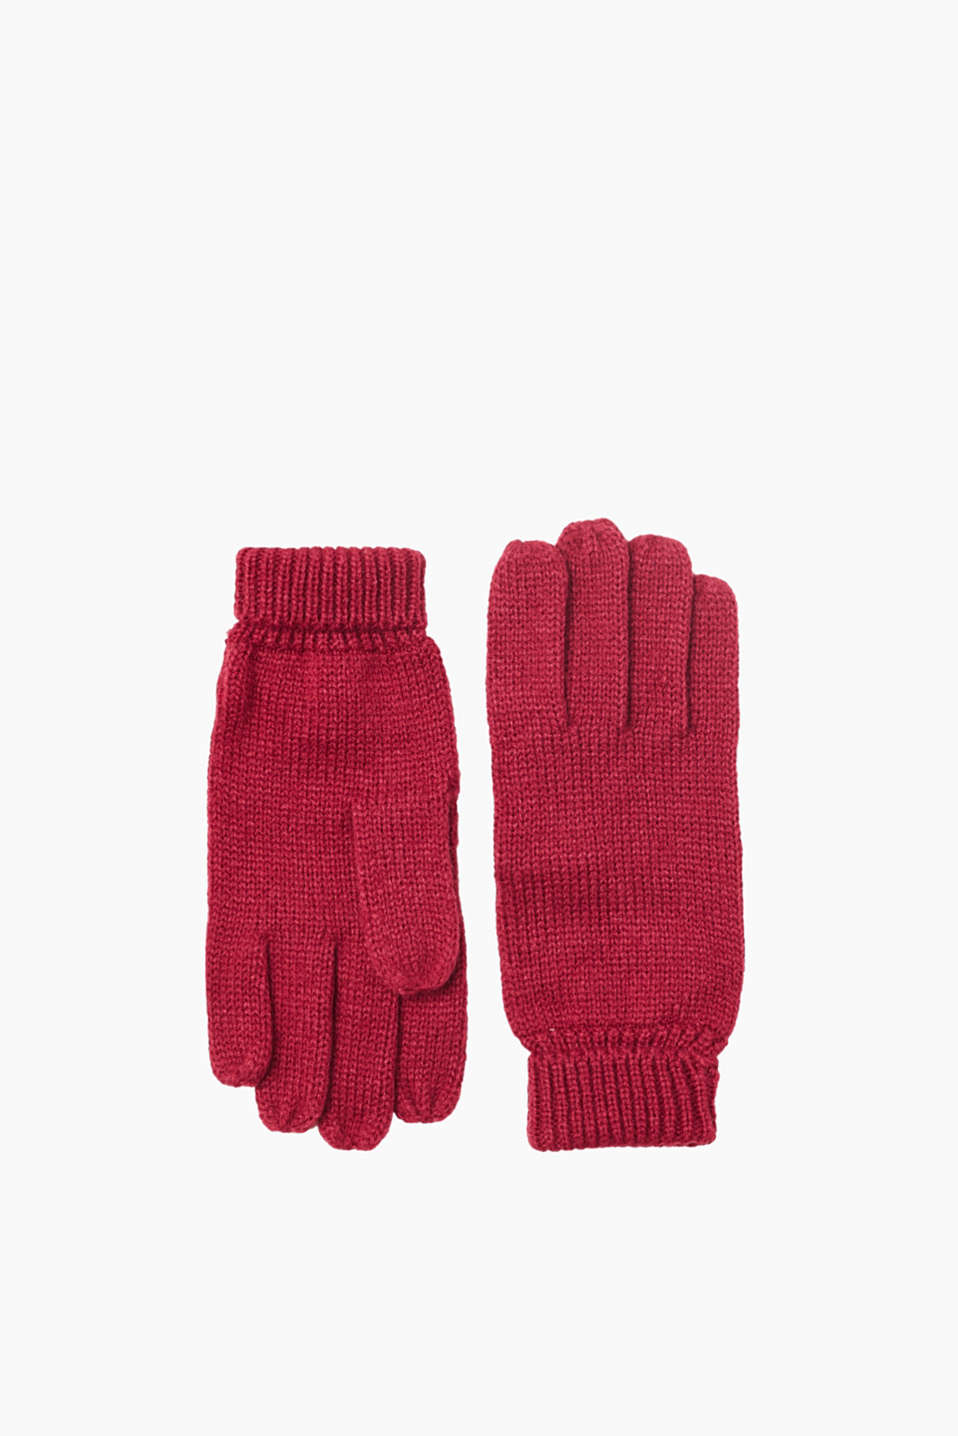 Autumn/winter basics: gloves with versatile, fold-over cuffs made of soft yarn